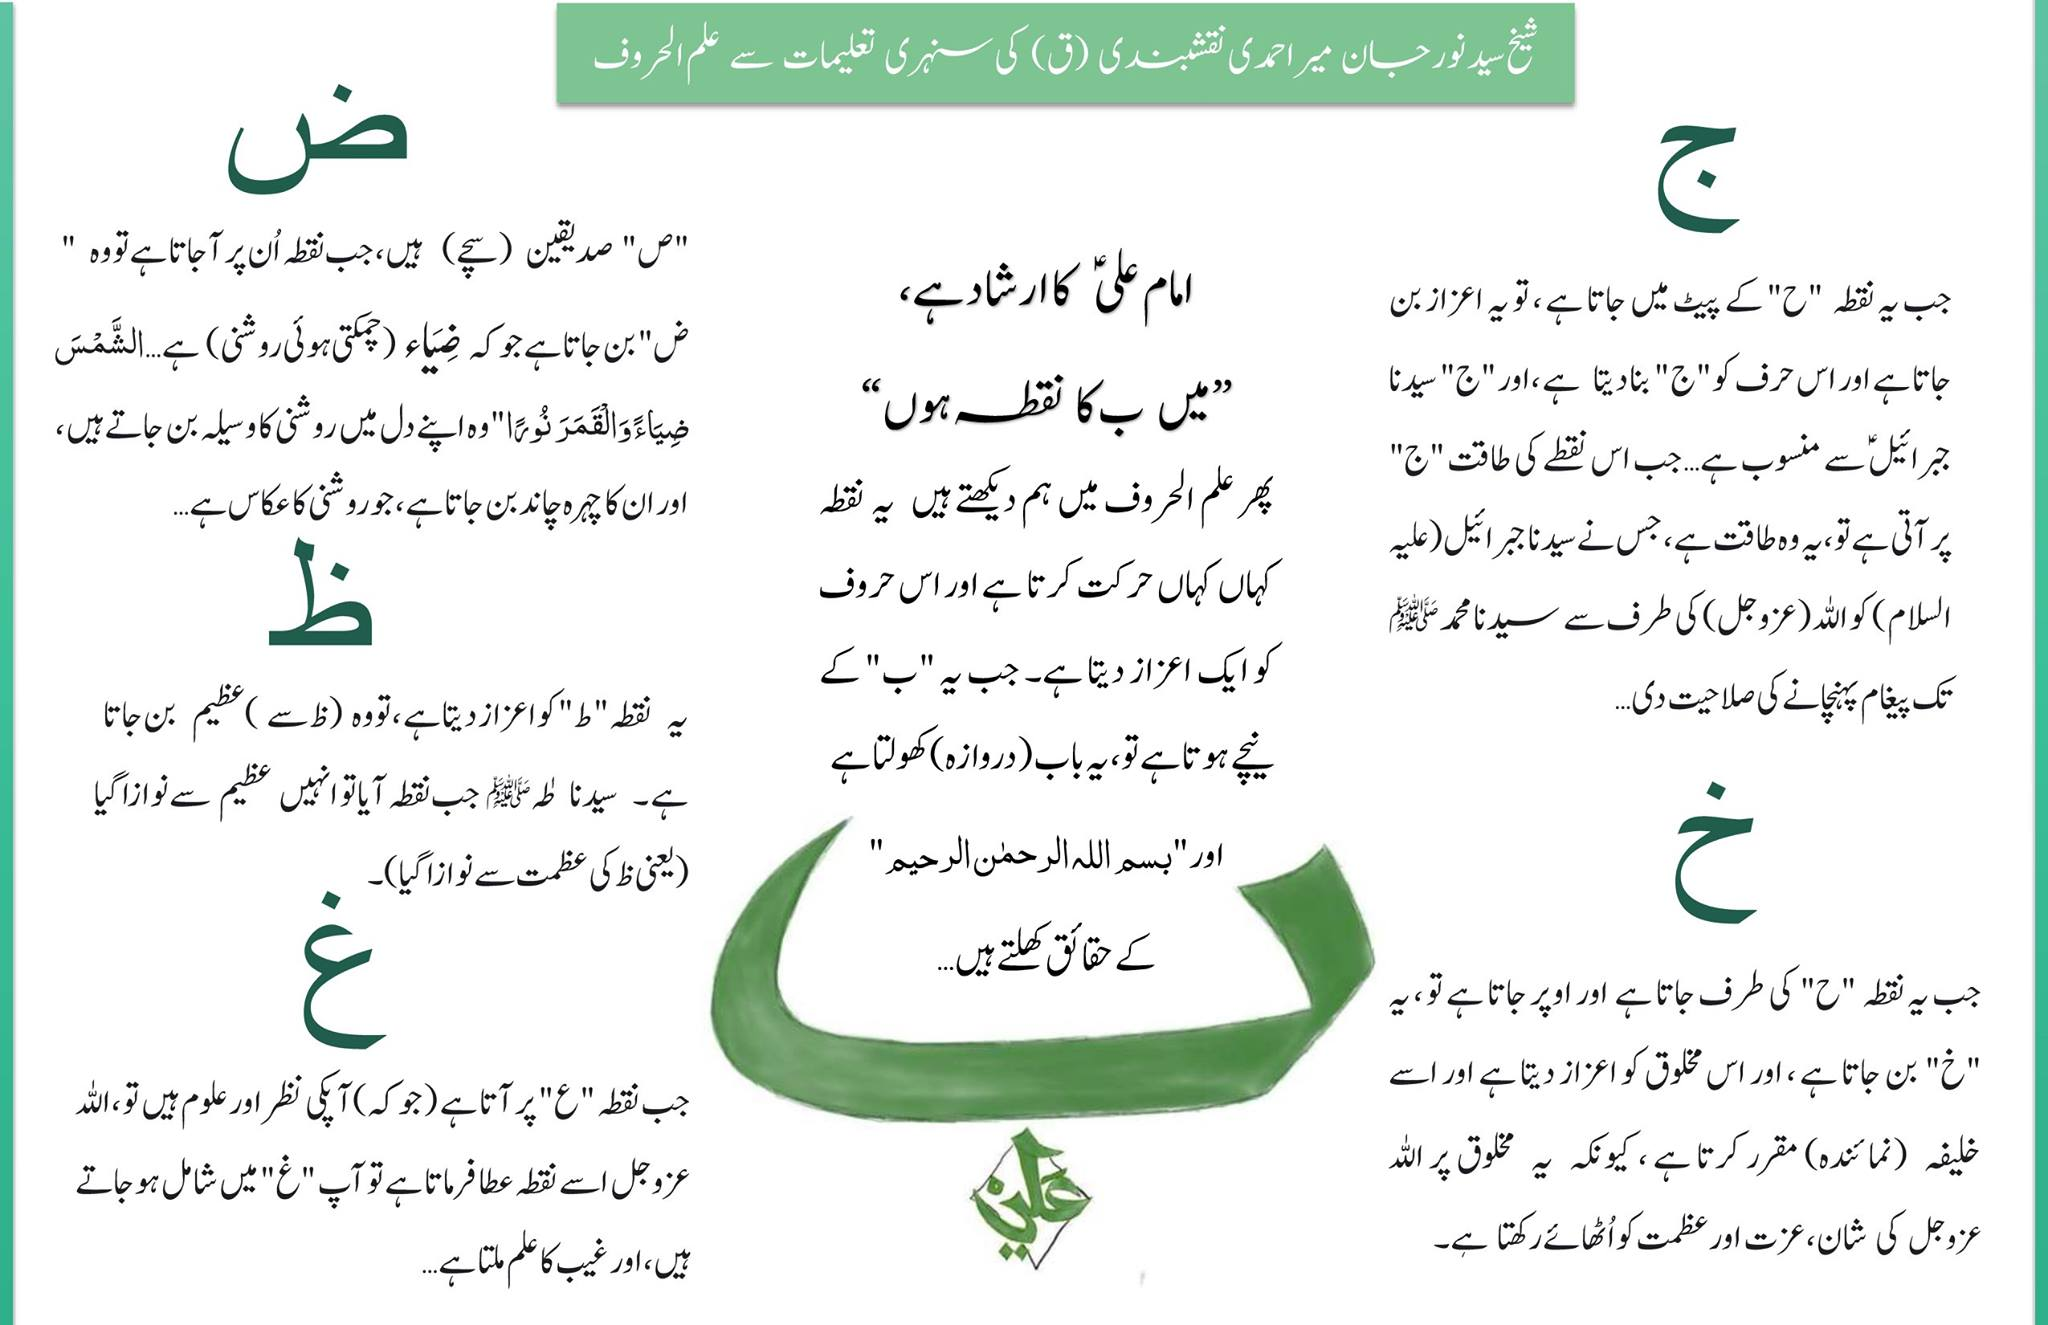 Secret of the Nuqt (Dot) Under the Ba in Quran Reality of Imam Ali (AS) جب &...